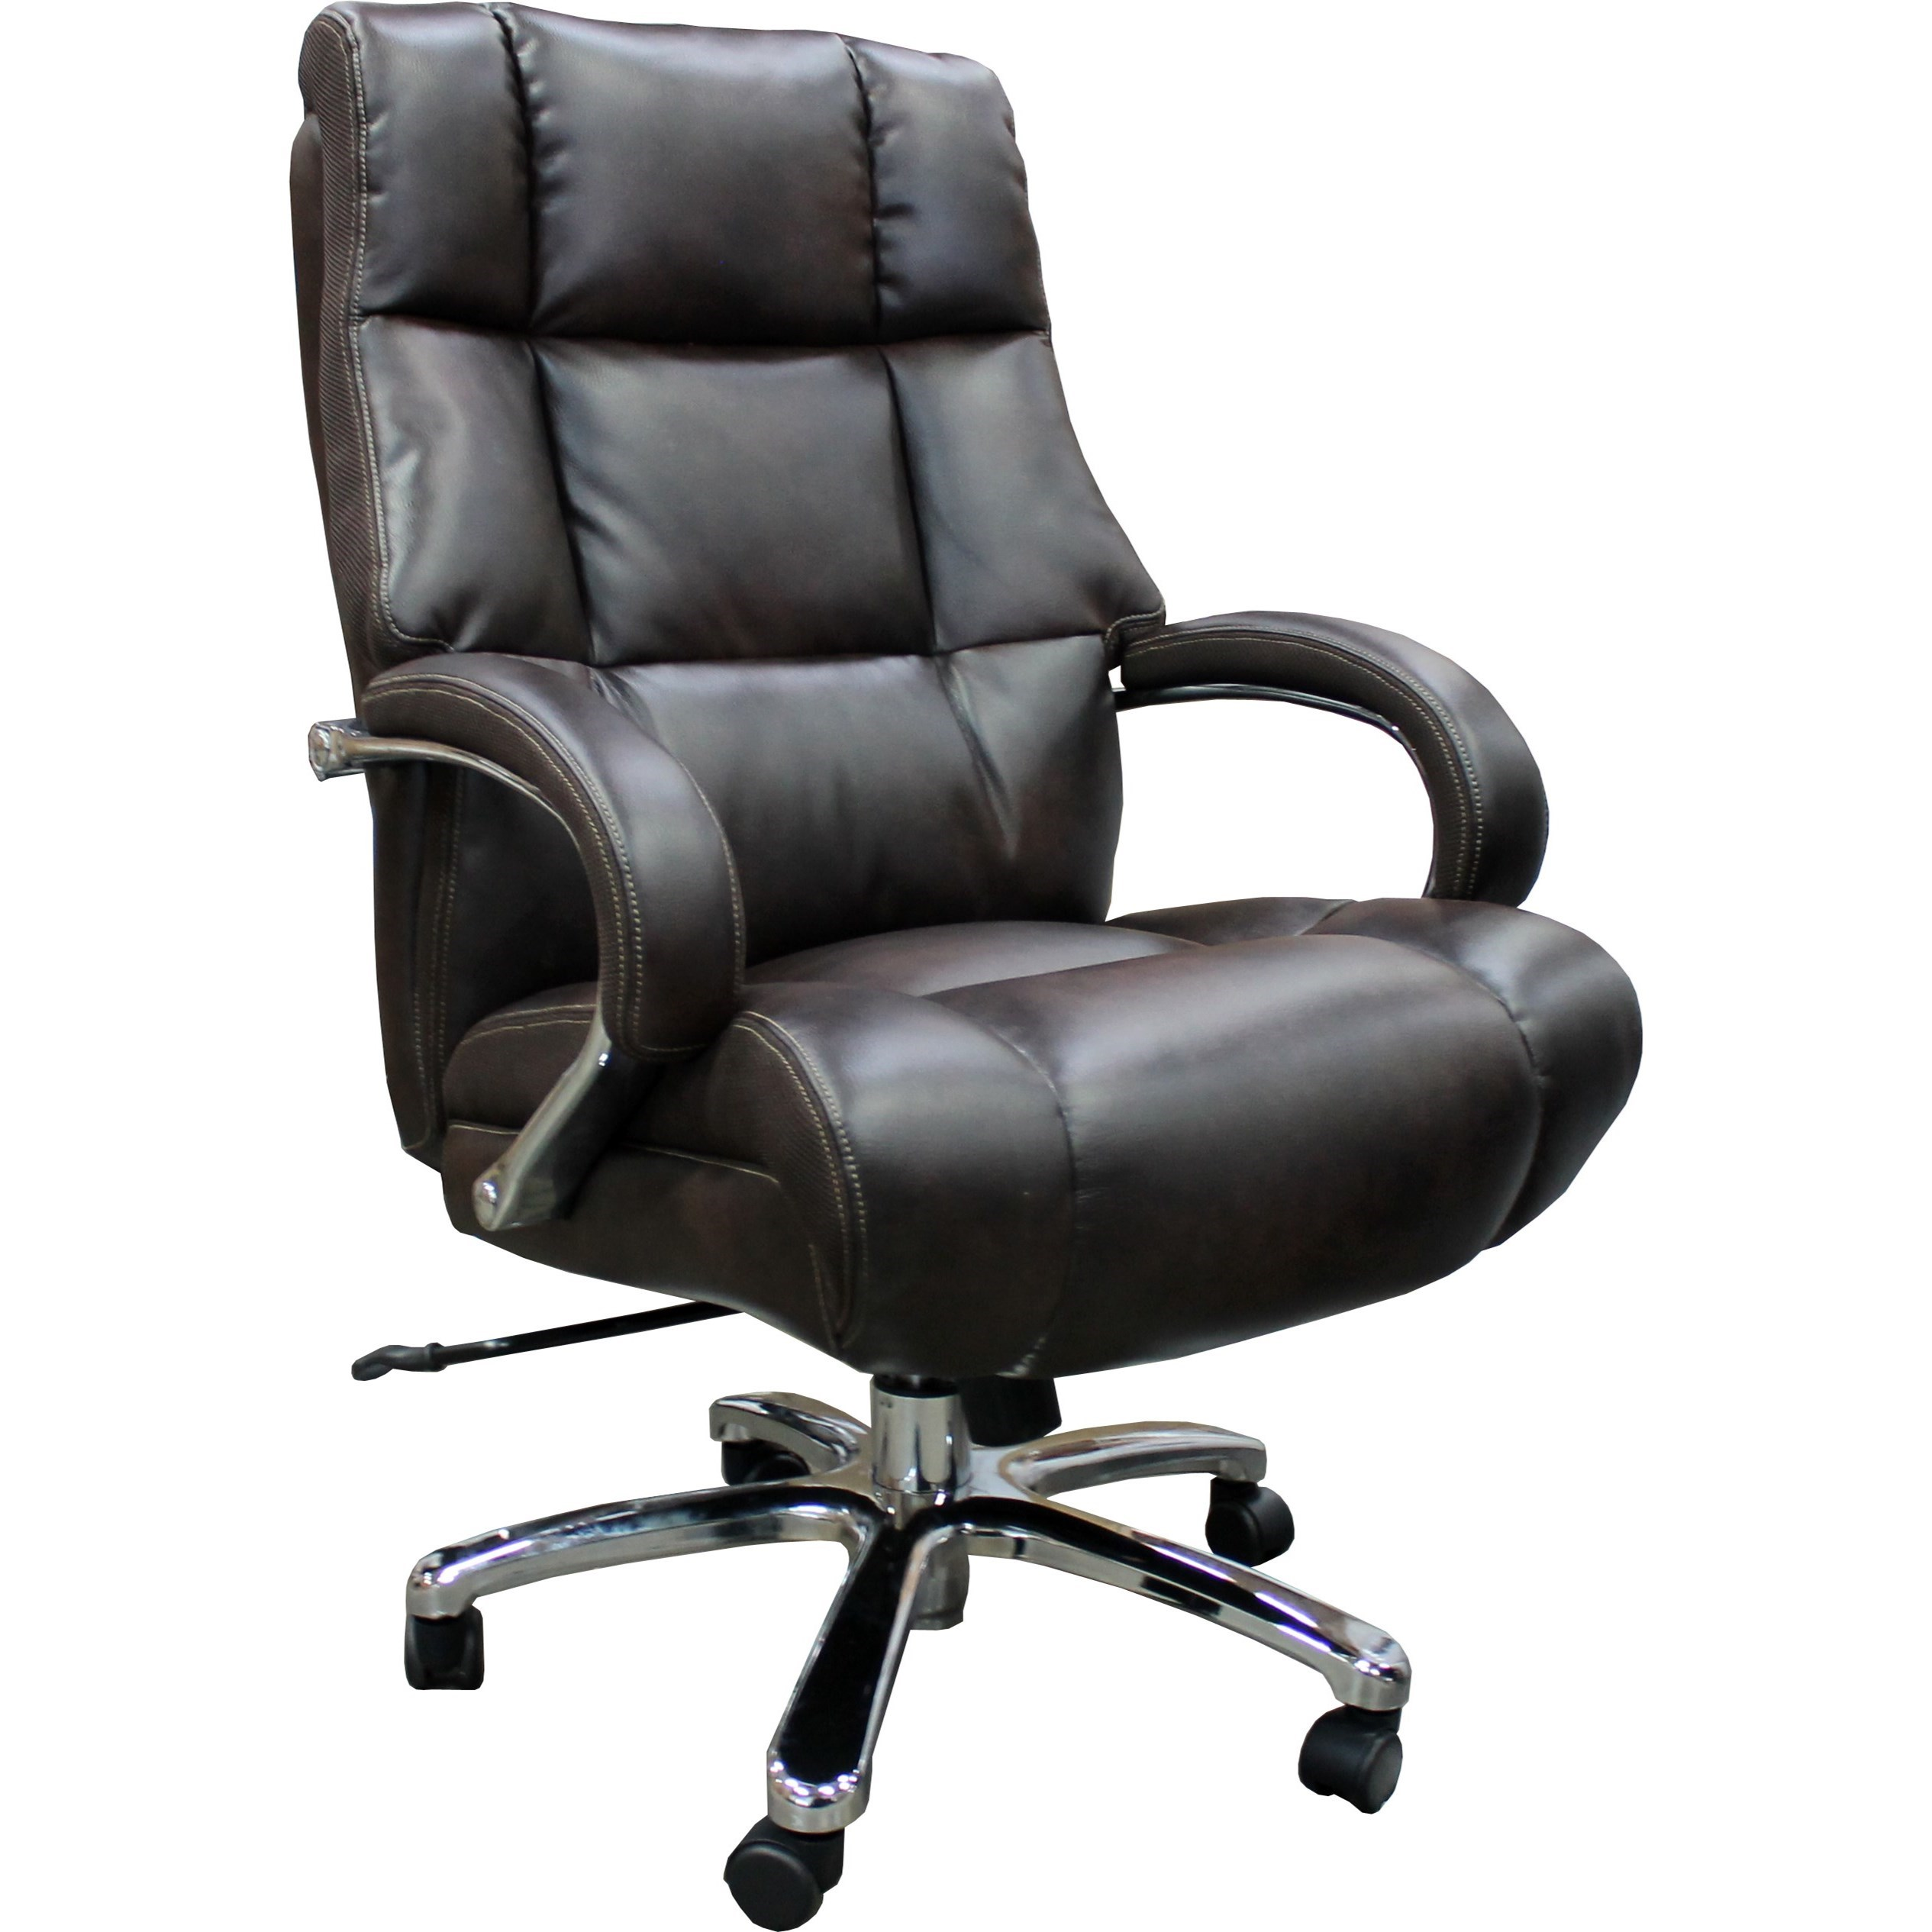 Parker Living Desk Chairs Heavy Duty Desk Chair With Curved Track Arms Lindy S Furniture Company Executive Desk Chairs